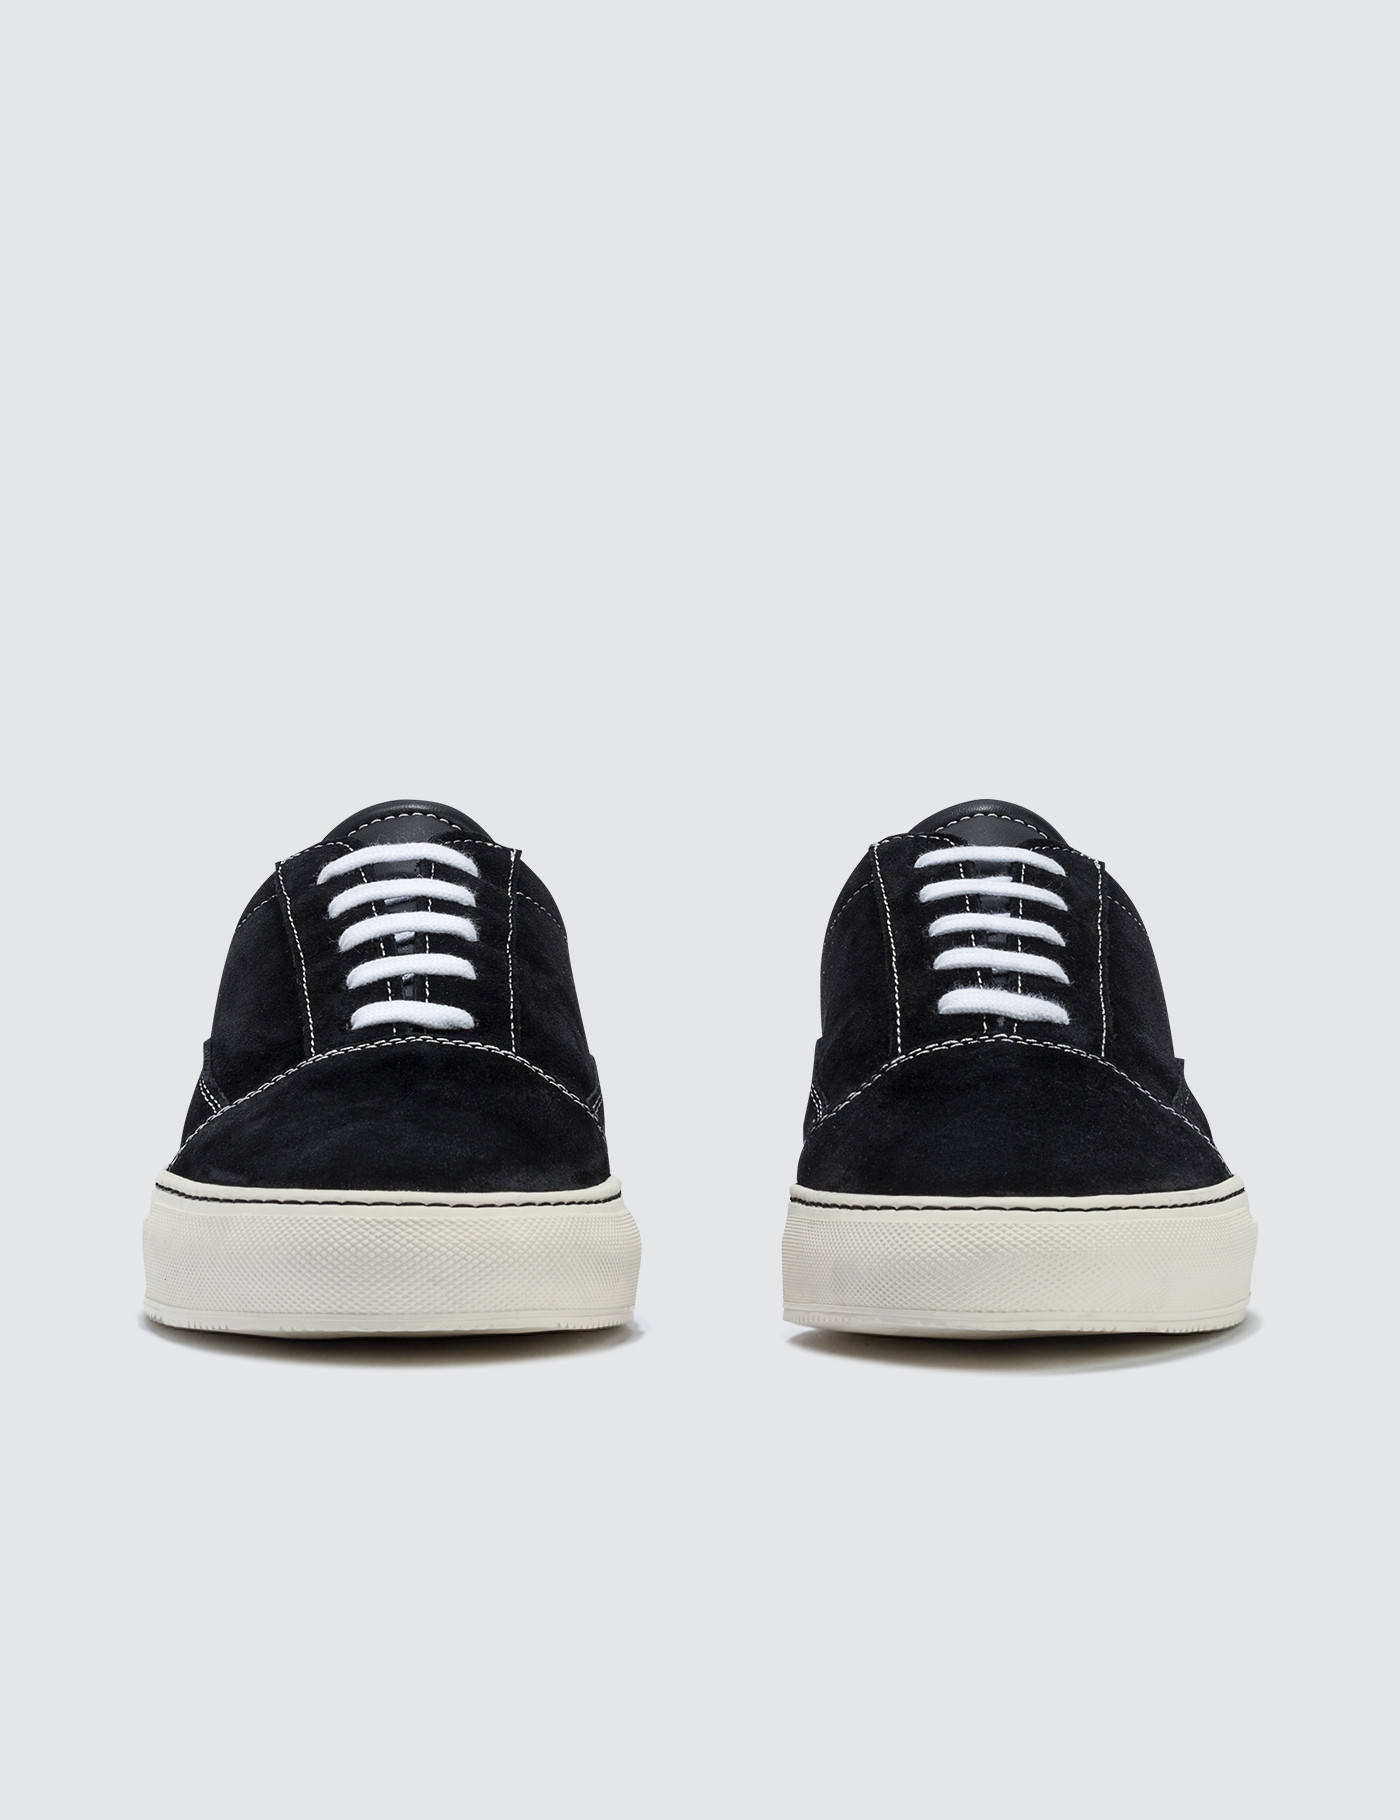 Common Projects - Skate Low In Suede | HBX